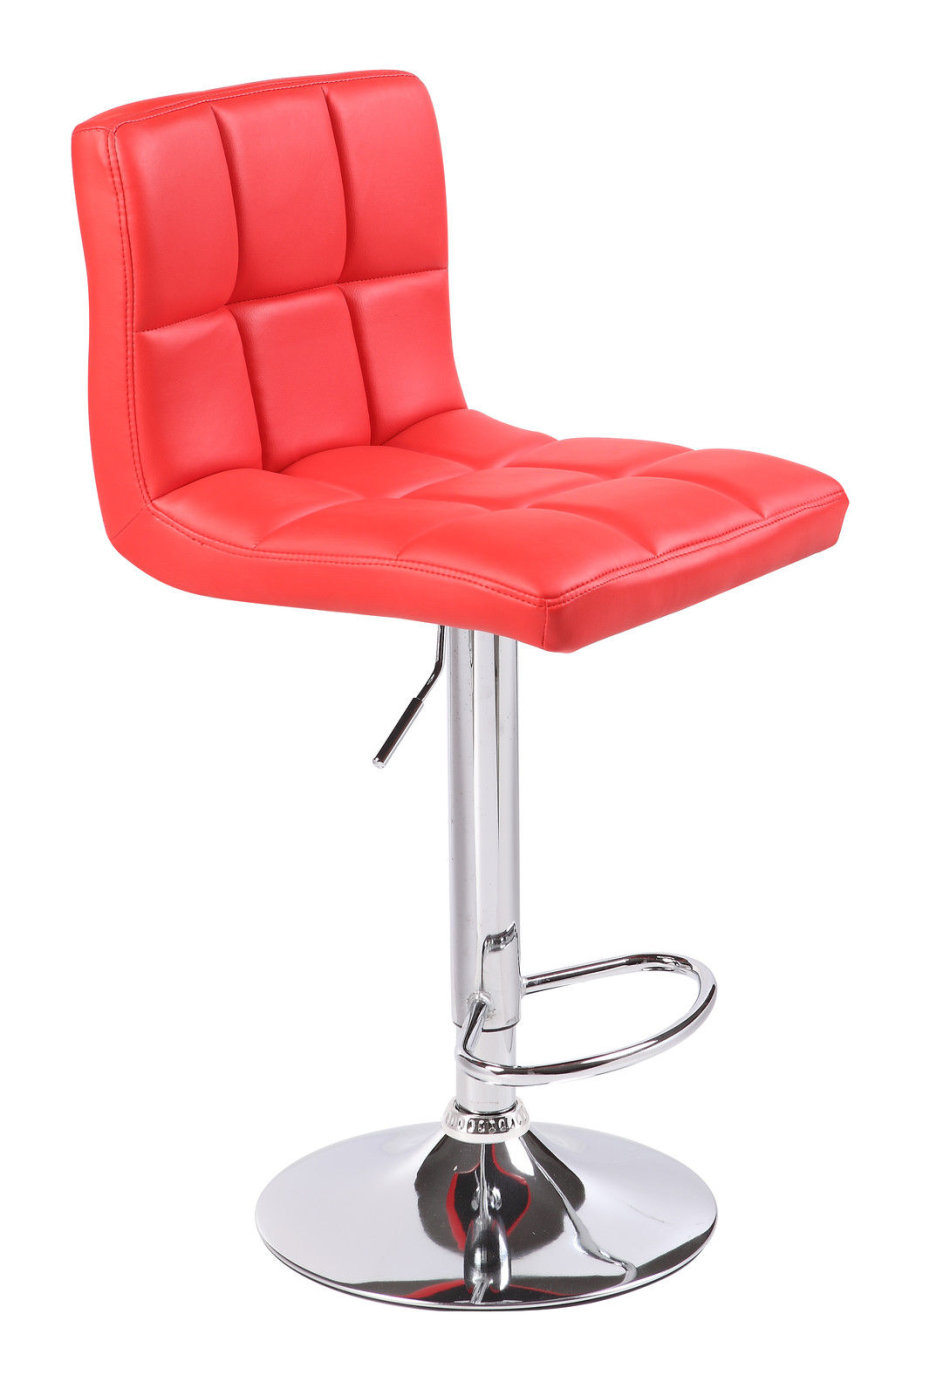 Couches amp Chairs MODERN HYDRAULIC SWIVEL LEATHER DINING  : 1610121622112 from www.bidorbuy.co.za size 950 x 1396 jpeg 90kB